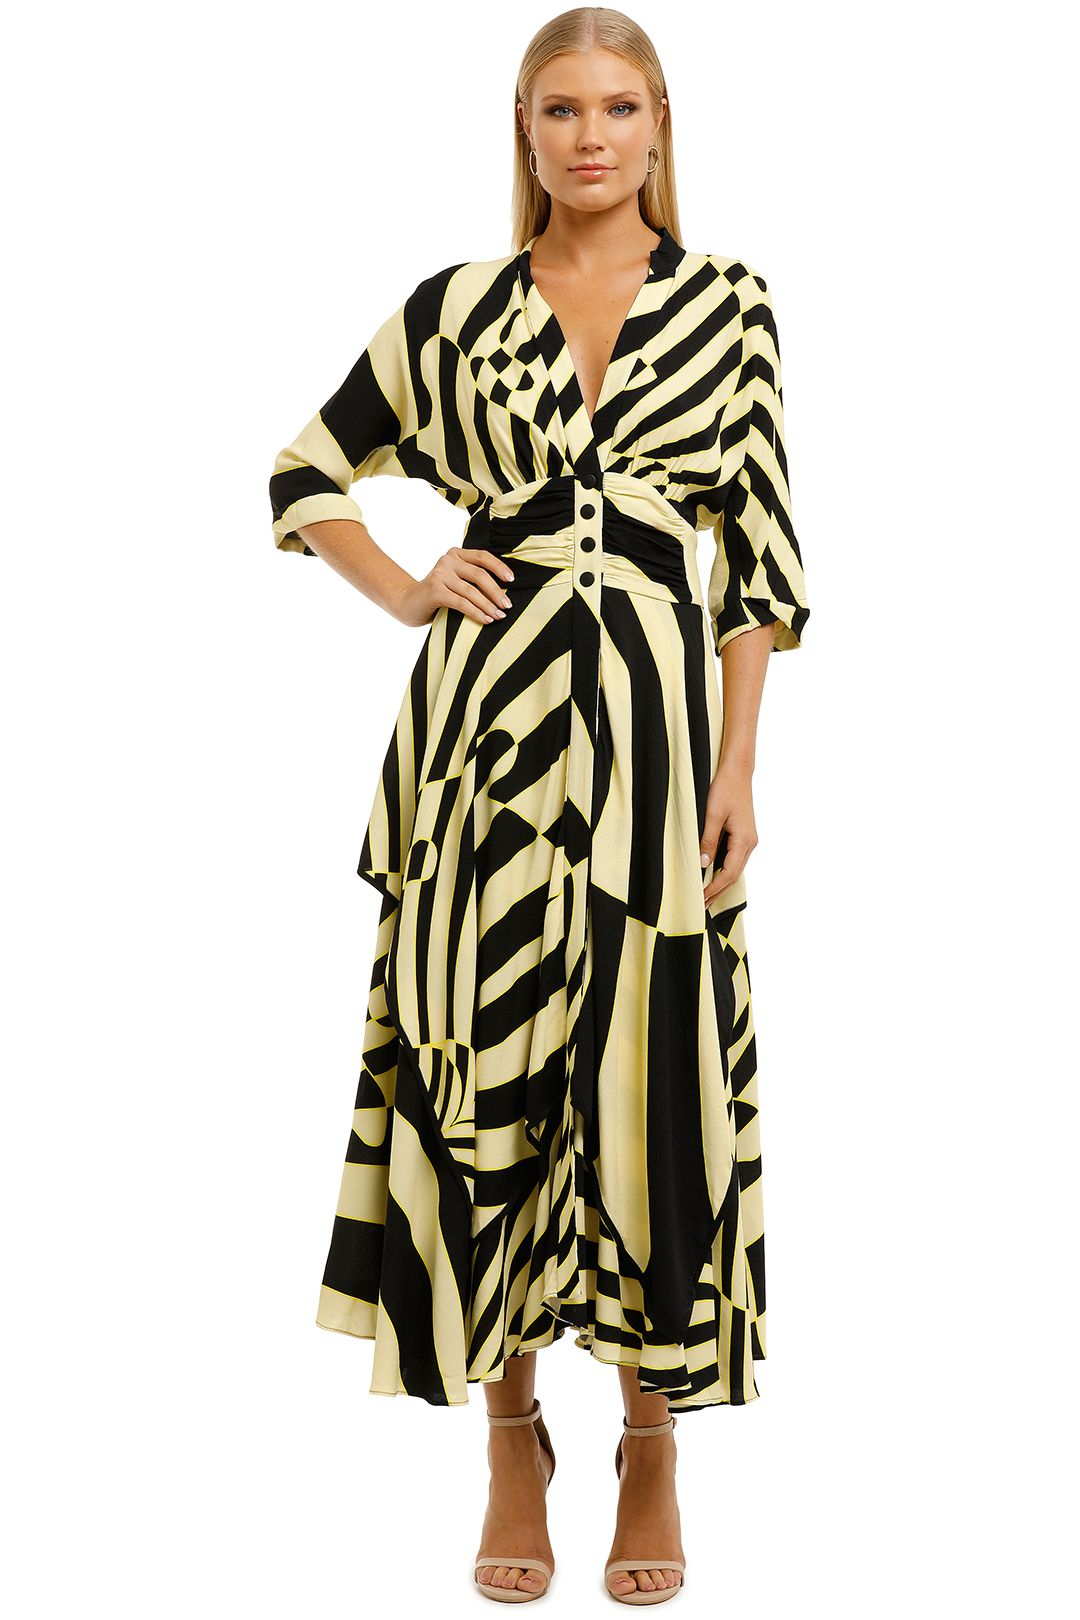 KITX-Stripes-Handkerchief-Shirt Dress-Zebra Print-Front